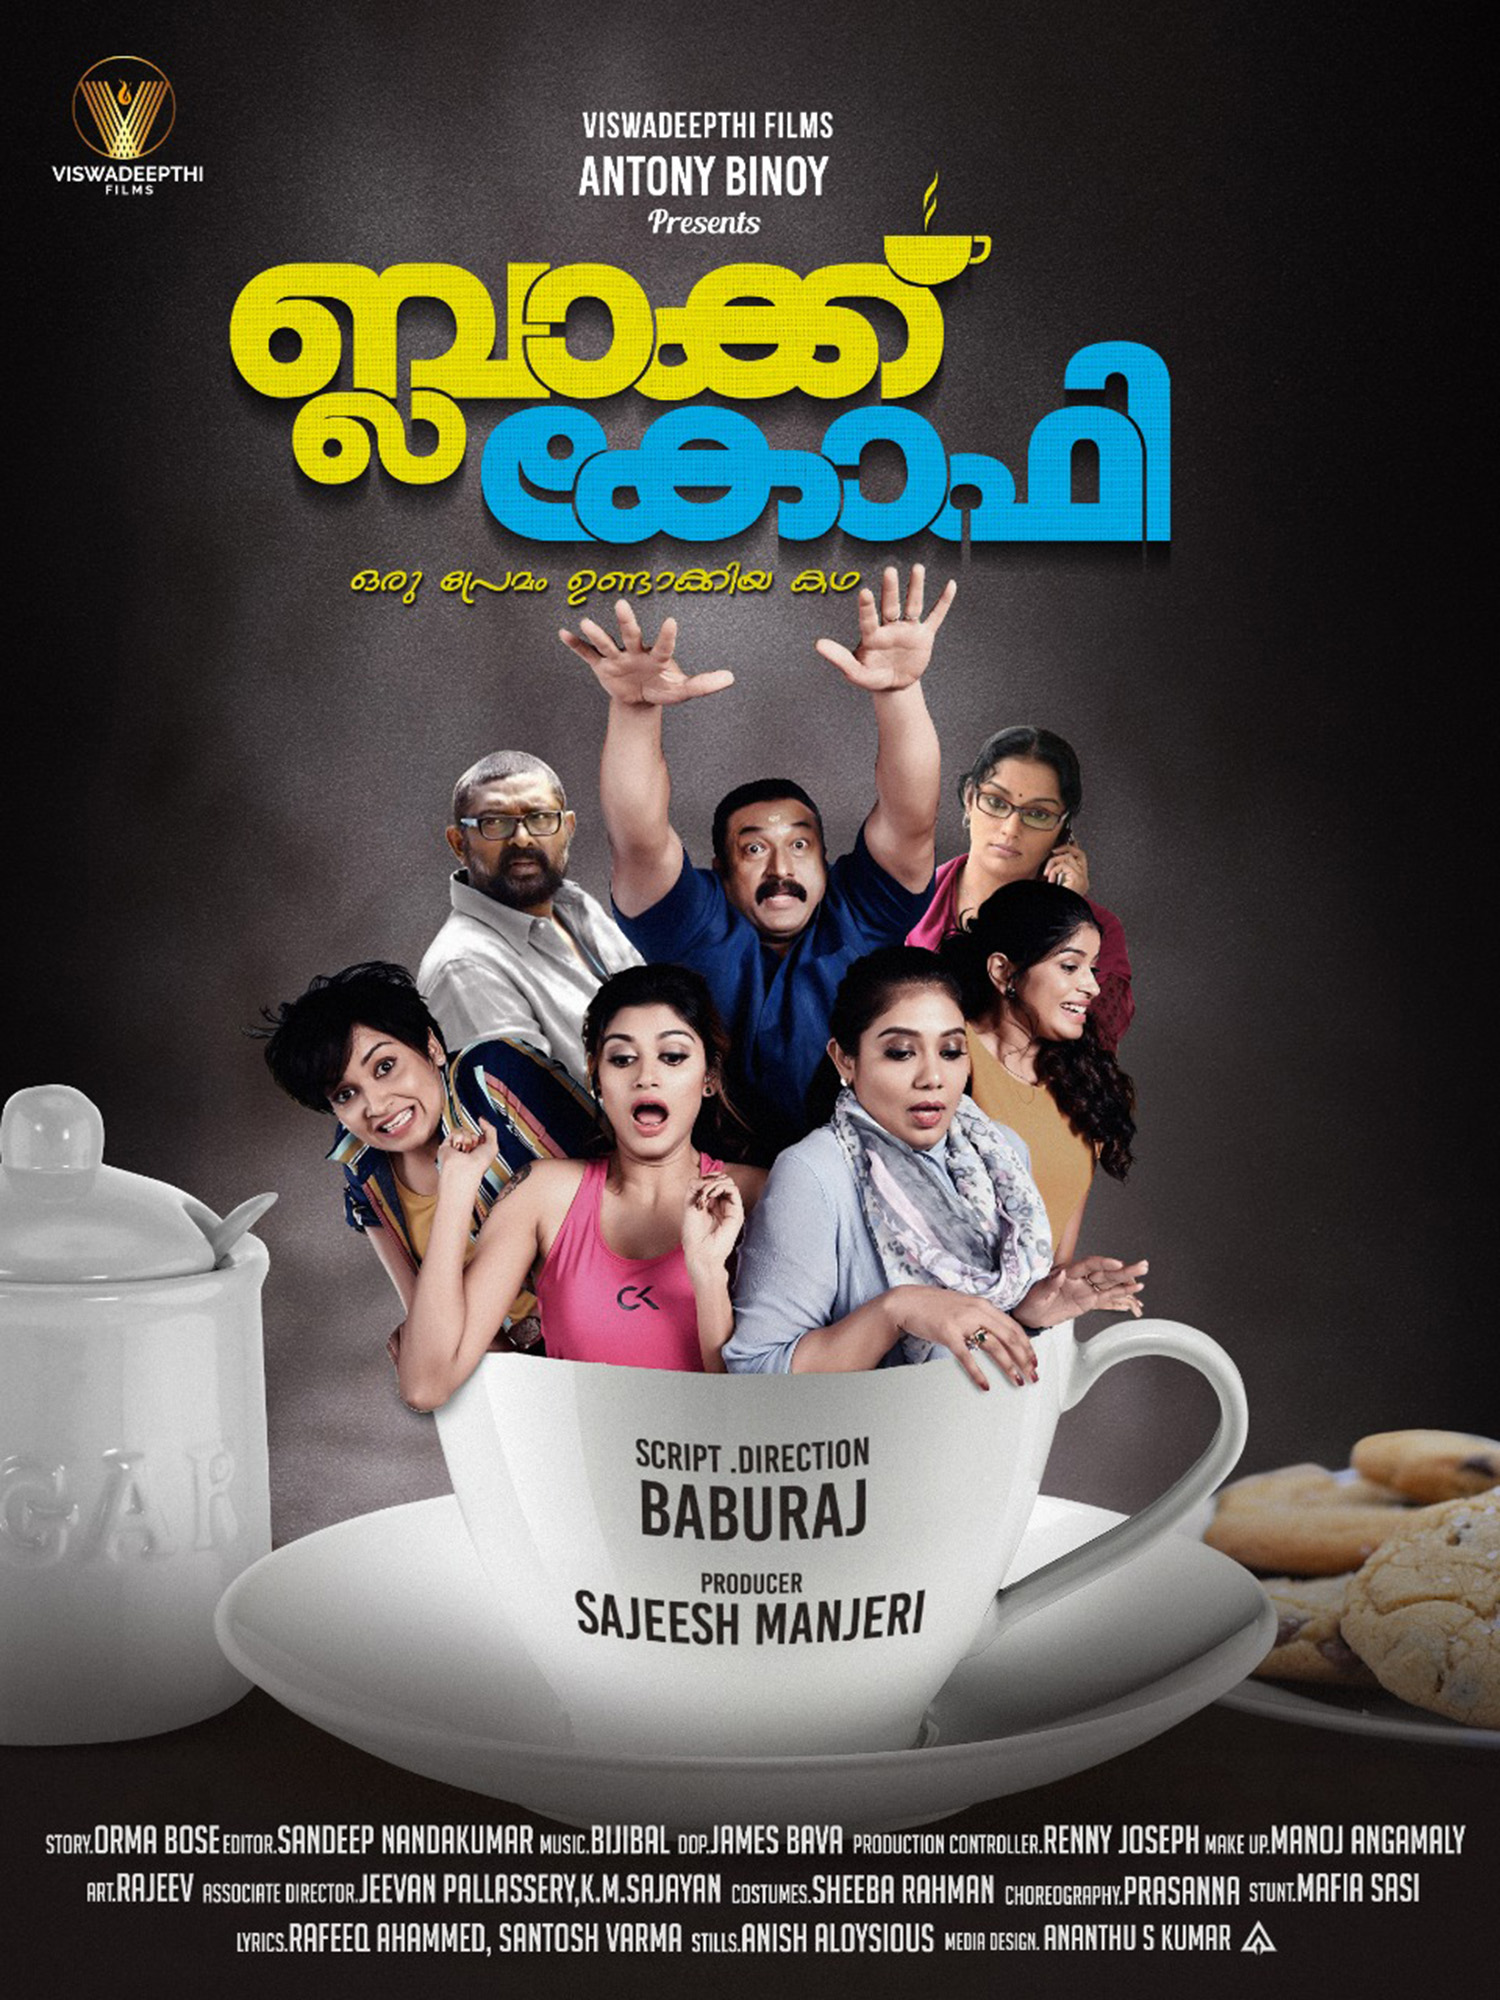 Black Coffee,baburaj,actor baburaj,baburaj's upcoming film,baburaj's new film,actor baburaj's updates,actor baburaj's latest news,salt n pepper second,salt n pepper,salt n pepper sequel,black coffee malayalam movie,baburaj's black coffee,black coffee movie poster